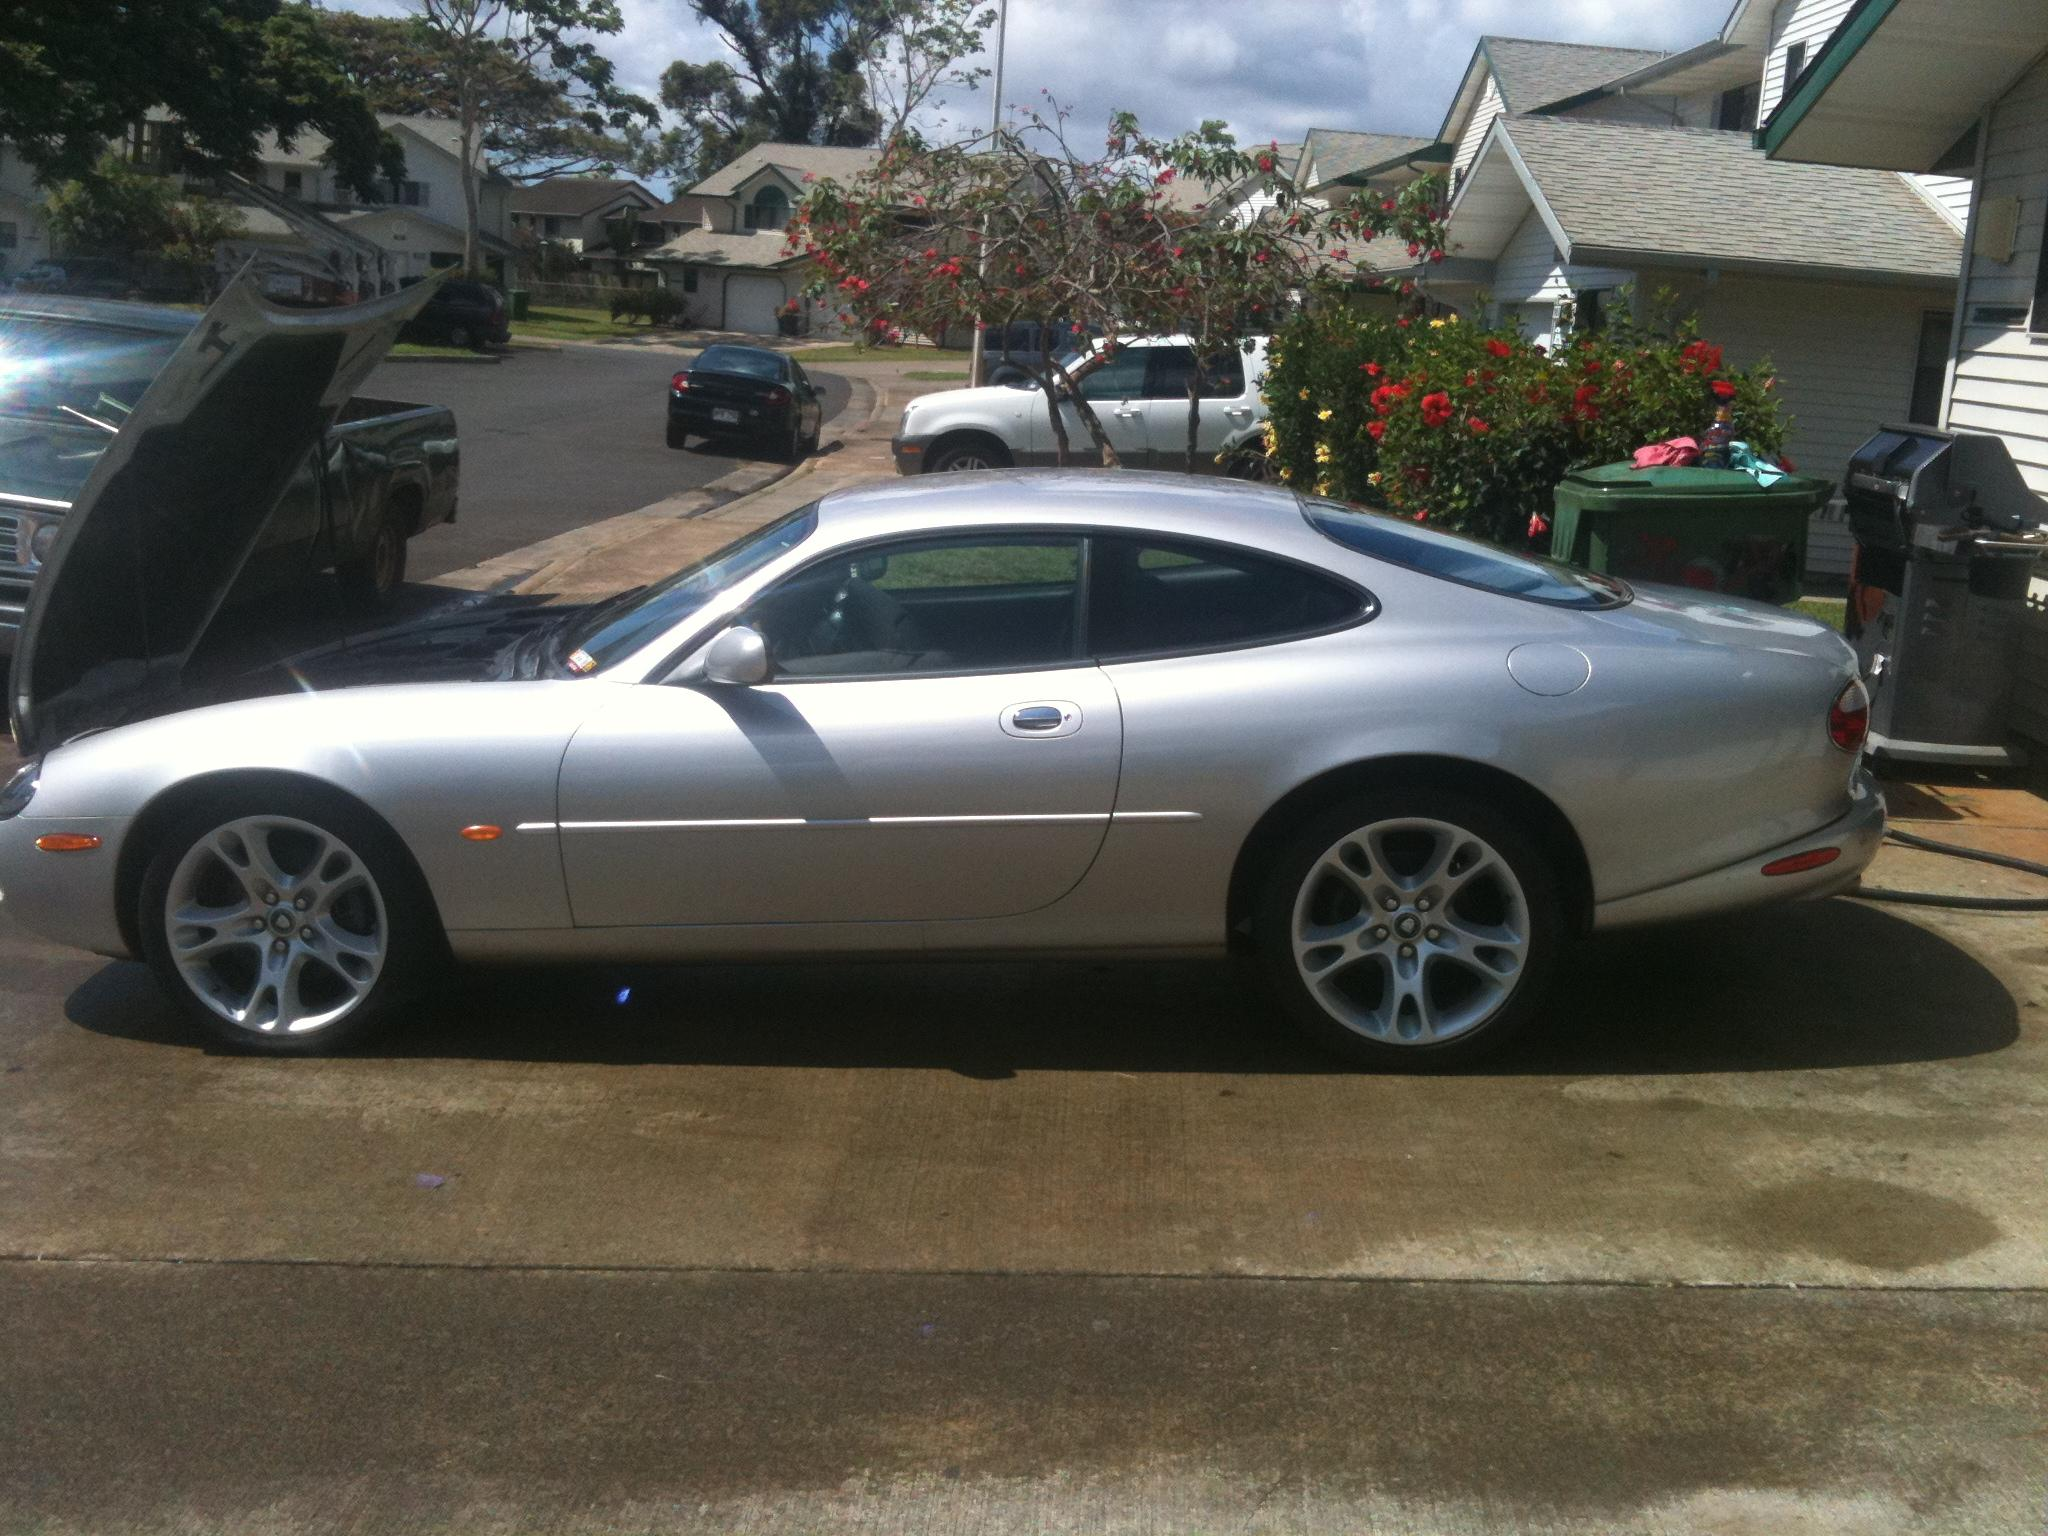 slick_wit_it 2003 Jaguar XK Series 14551003